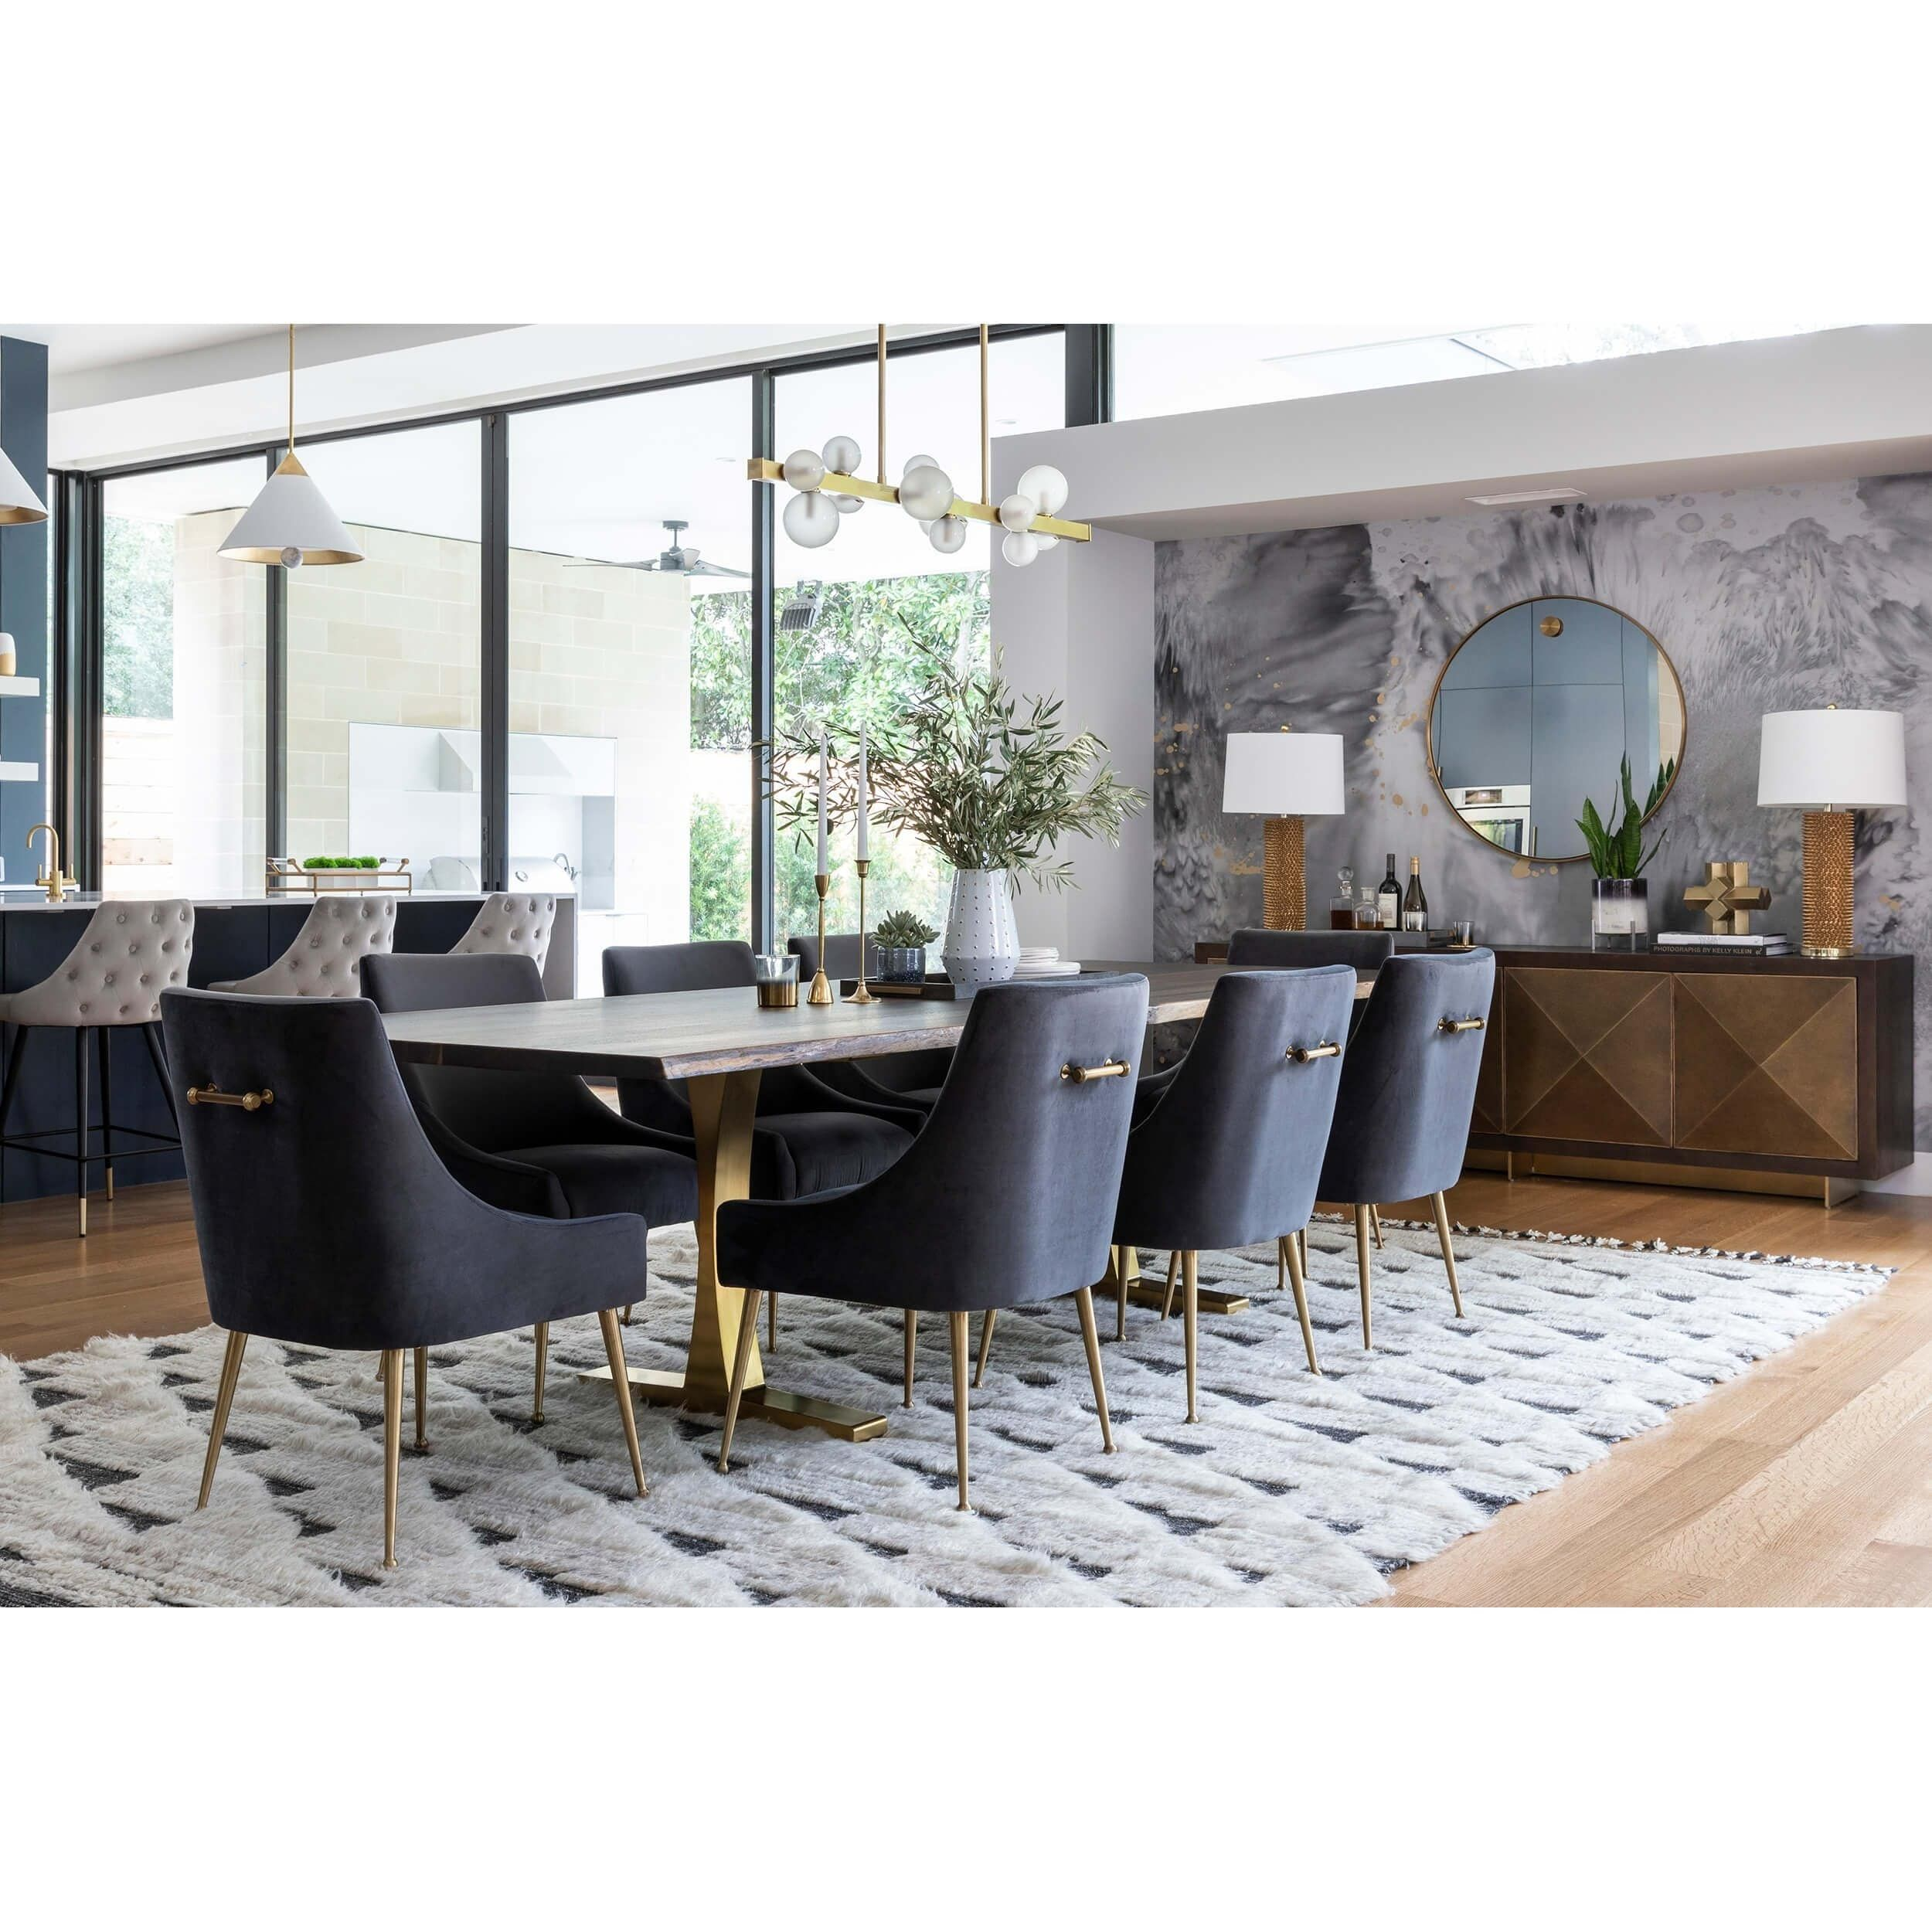 Beatrix Side Chair Dark Grey Brushed Gold Base In 2021 Dining Room Interiors Dining Room Contemporary Interior Design Dining Room